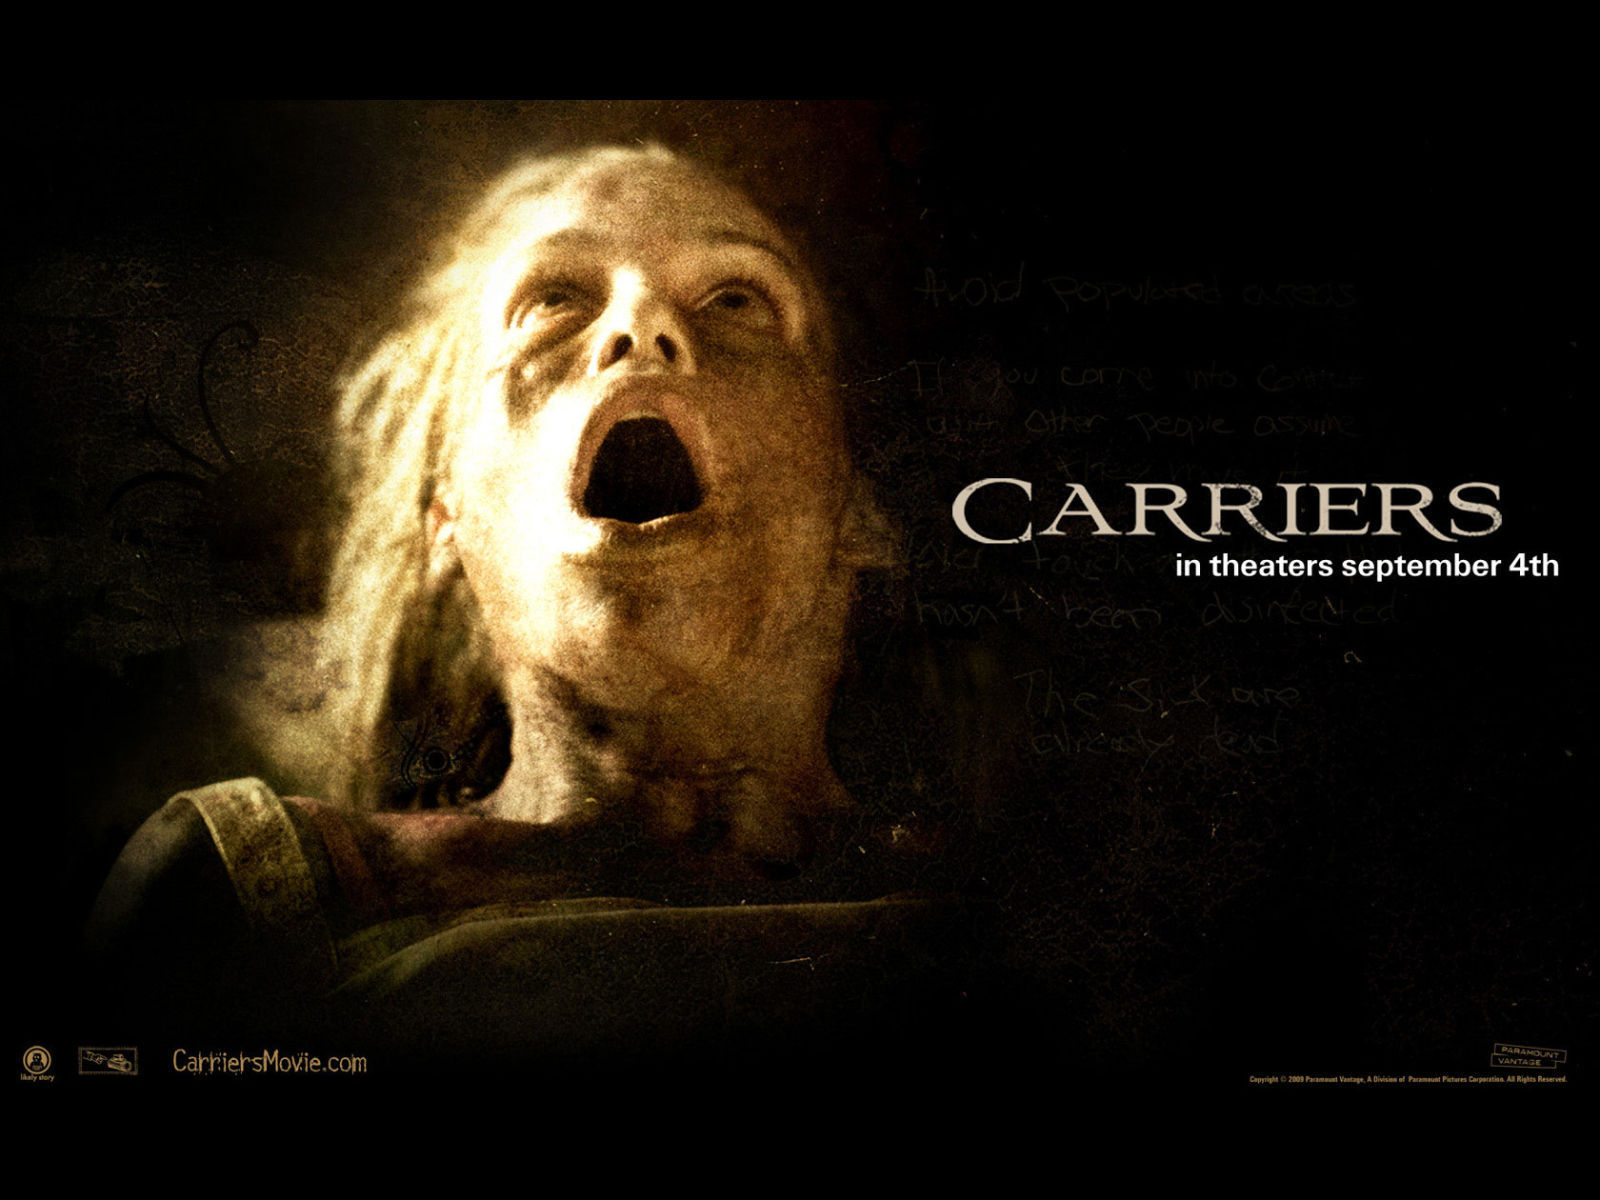 Carriers 2009 wallpapers   Horror Movies Wallpaper 8028048 1600x1200